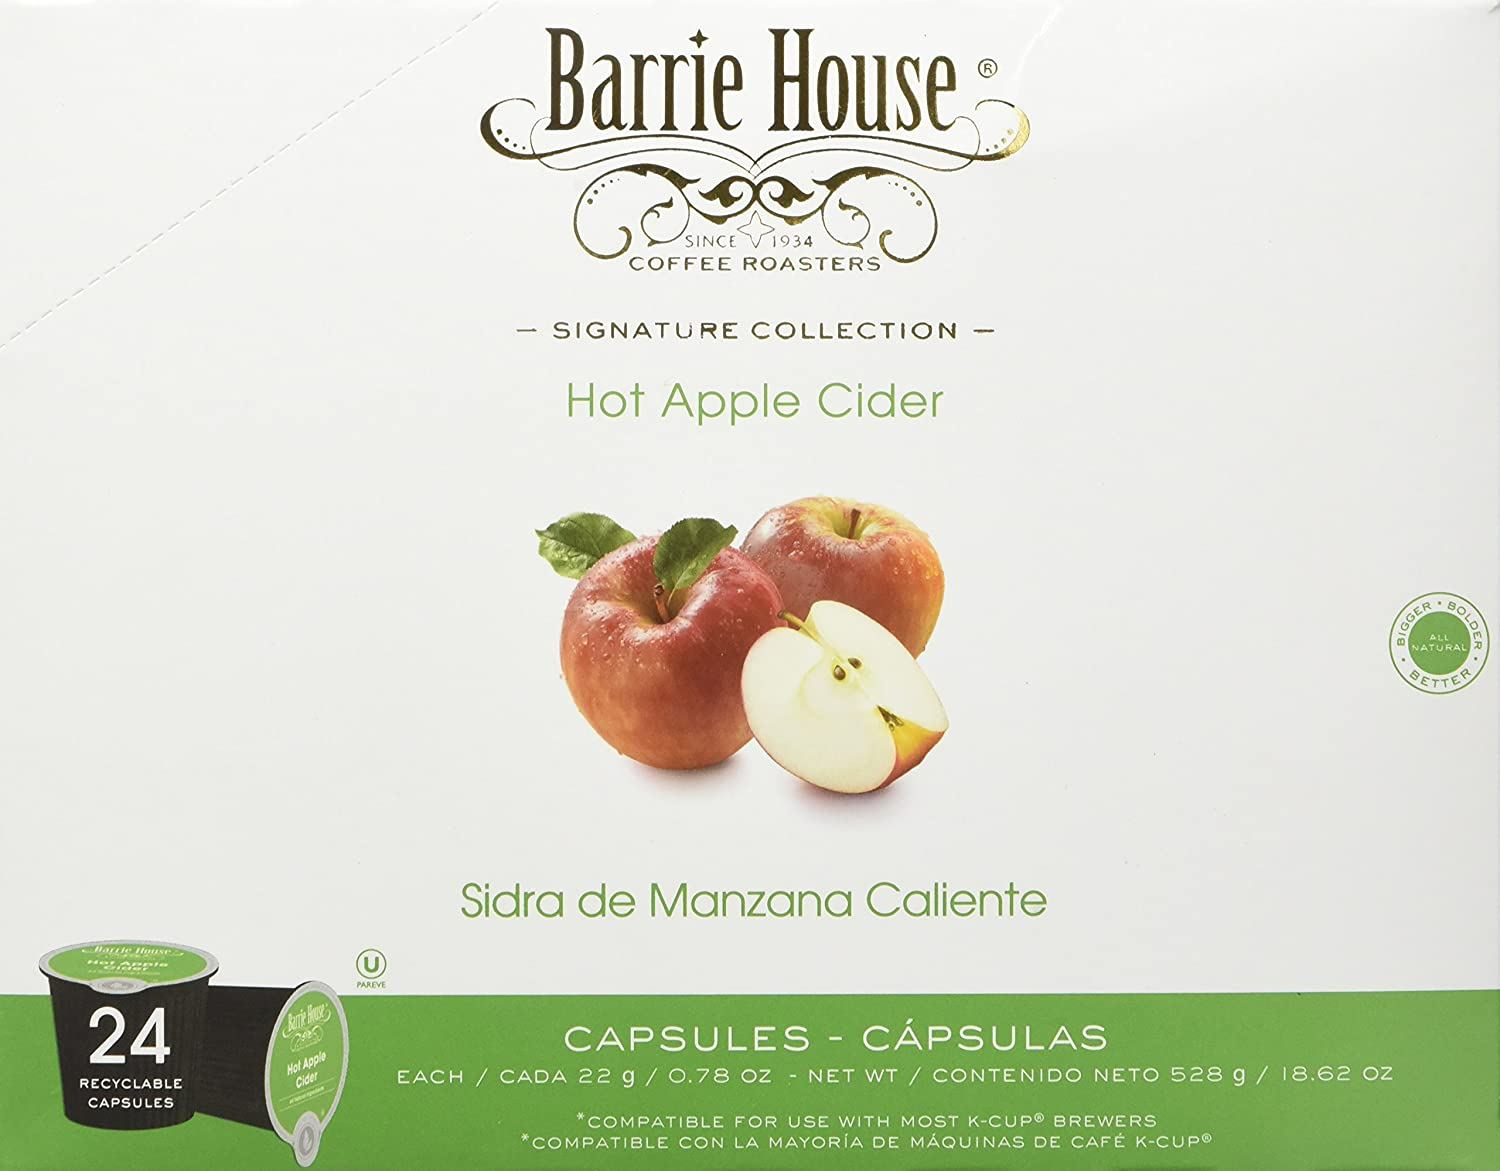 Barrie House Hot Apple Cider Single Cup Capsules (96 Capsules): Amazon.com: Grocery & Gourmet Food